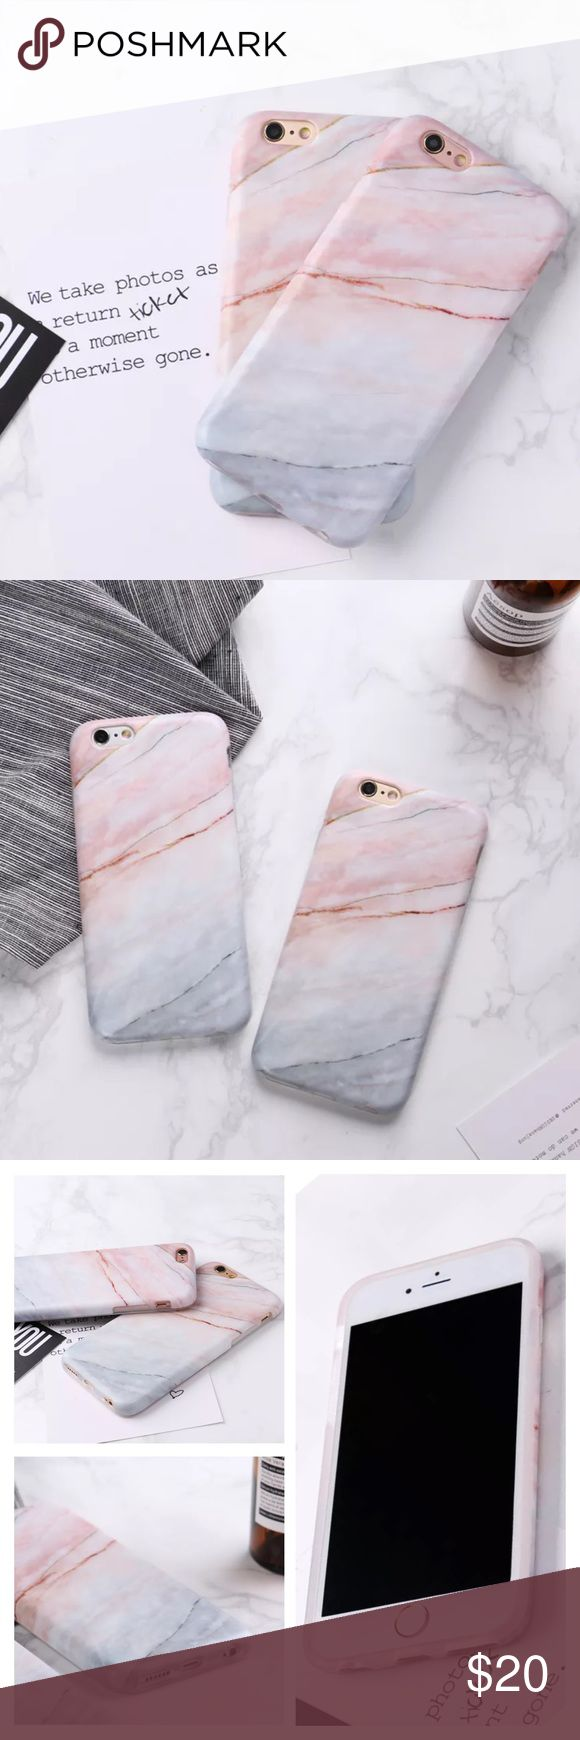 || Marble Silicone IPhone Case || Protective Cover •Marble iPhone Case• Pink/White   Silicone Protective Cover  Available for iPhone 7/7s Plus  (Also available for iPhone 6/6s & 6/6s Plus. See other listings)  {Beautiful marble inspired case, with Pink and White colors. Made of silicone, soft but durable. Not a hard case. This is also not a bumper, but does go around the edges for some front coverage} Case will not come with retail packaging.  I currently use this case and love it!!! Highly…